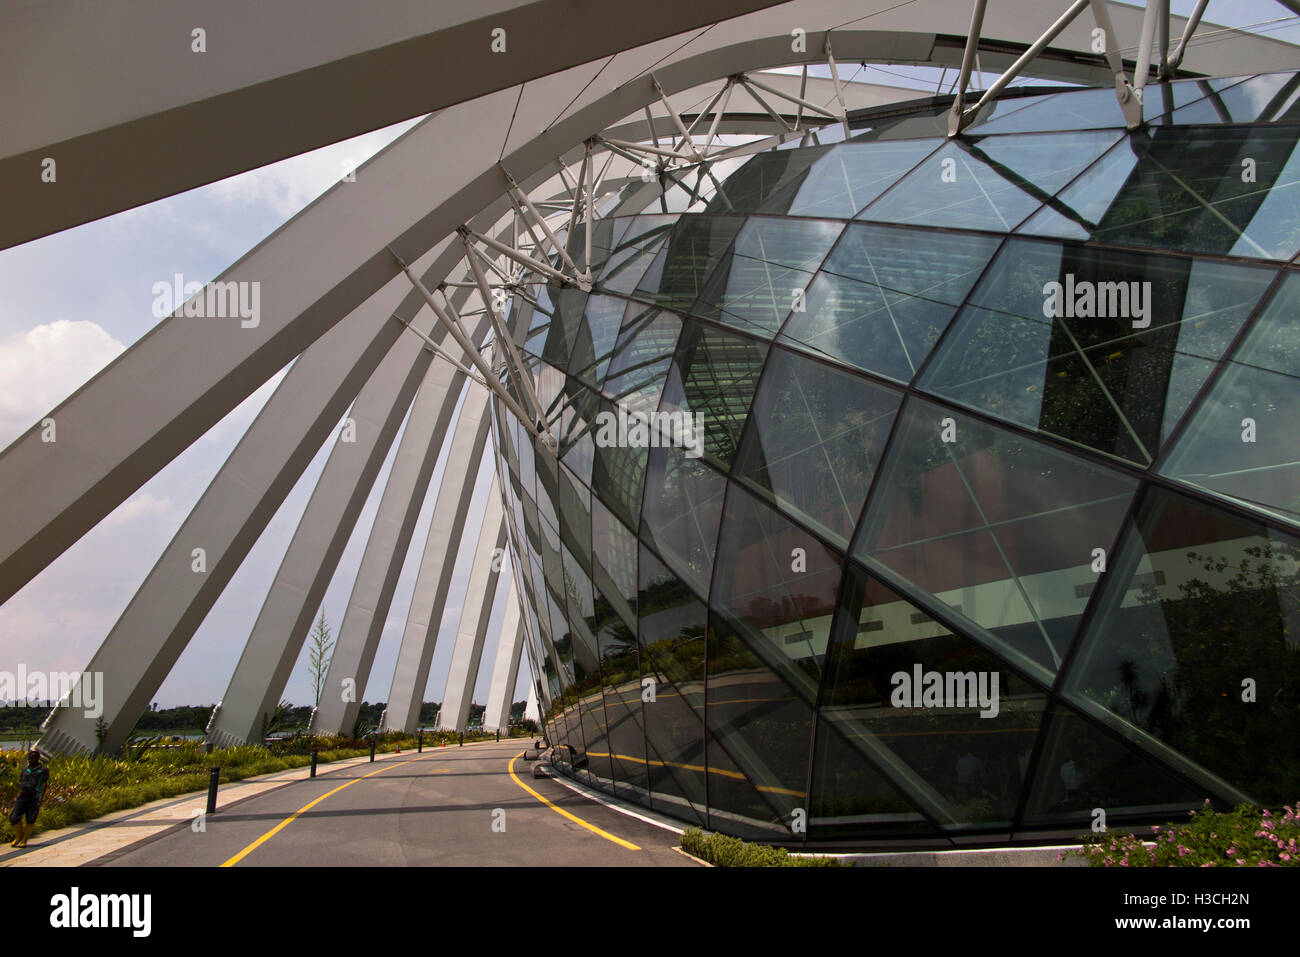 Singapore, Gardens by the Bay, road beside the Flower Dome, the world's largest columnless glasshouse - Stock Image